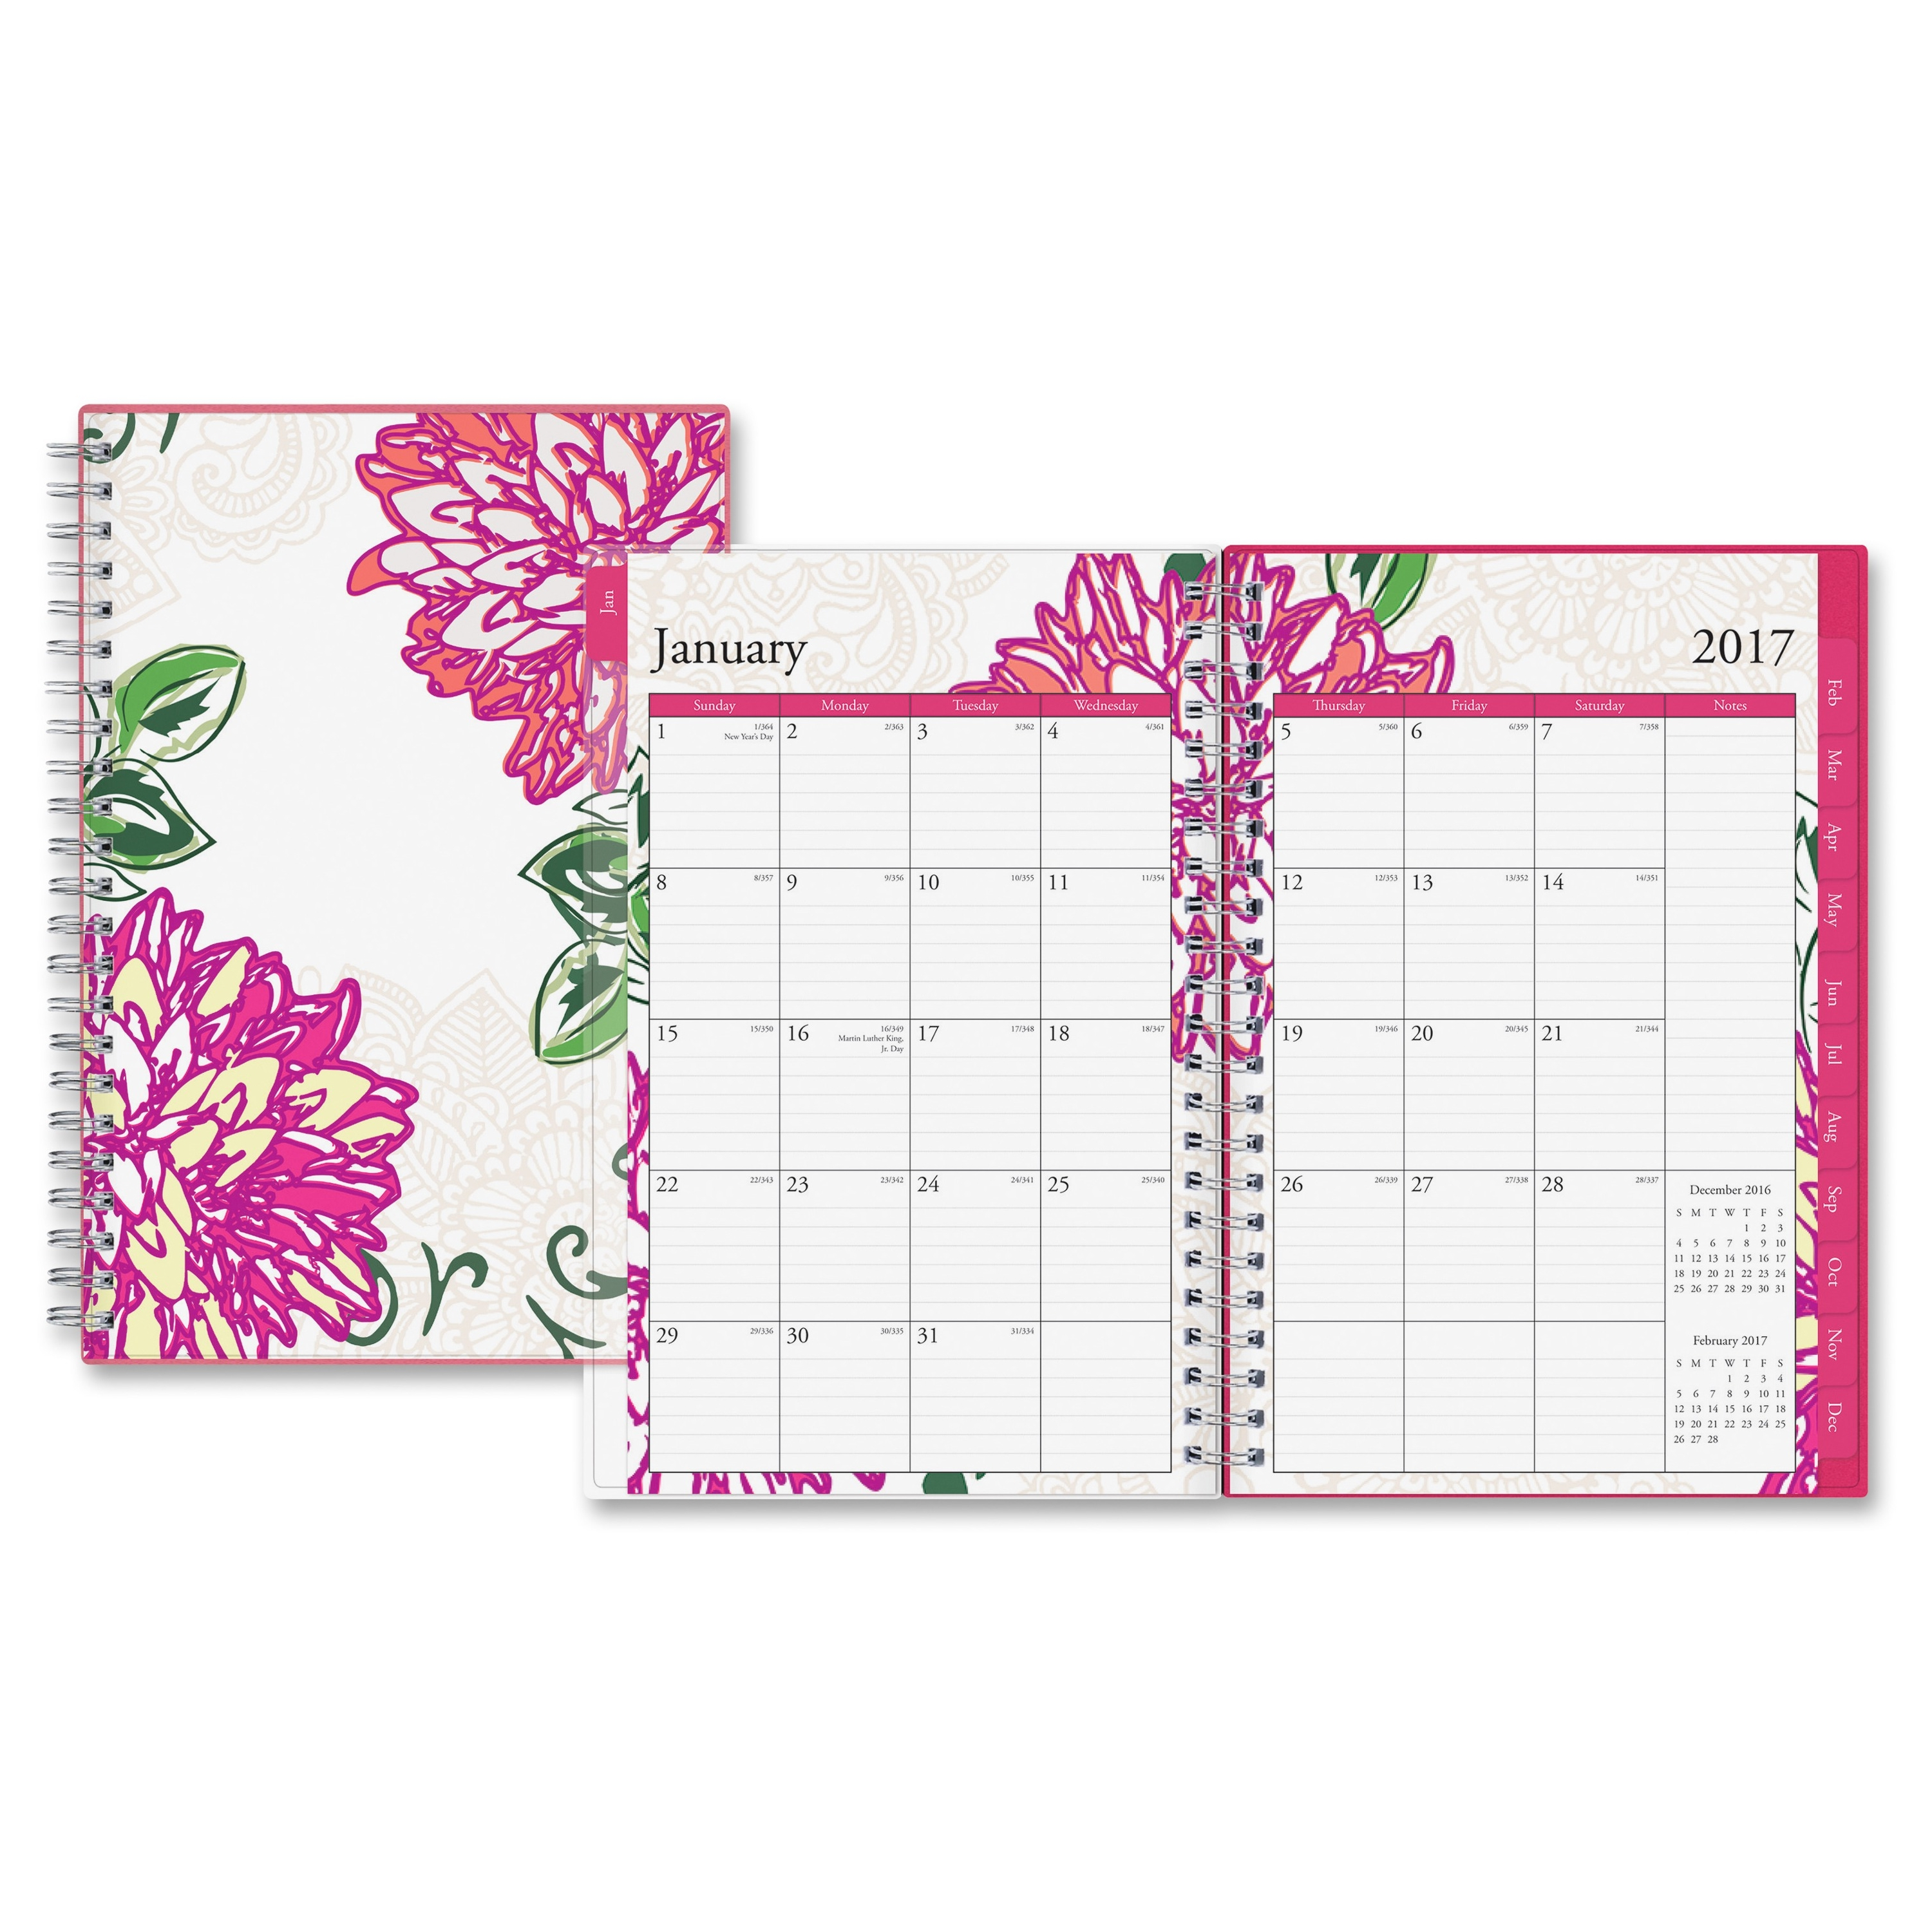 Blue Sky Dahlia Small Frosted Planner - Small Size - Weekly, Monthly, Daily - 1 Year - January Till December - 2 Month, 2 Week Double Page Layout - Twin Wire - Frosted, Multicolor - (bls-18701)